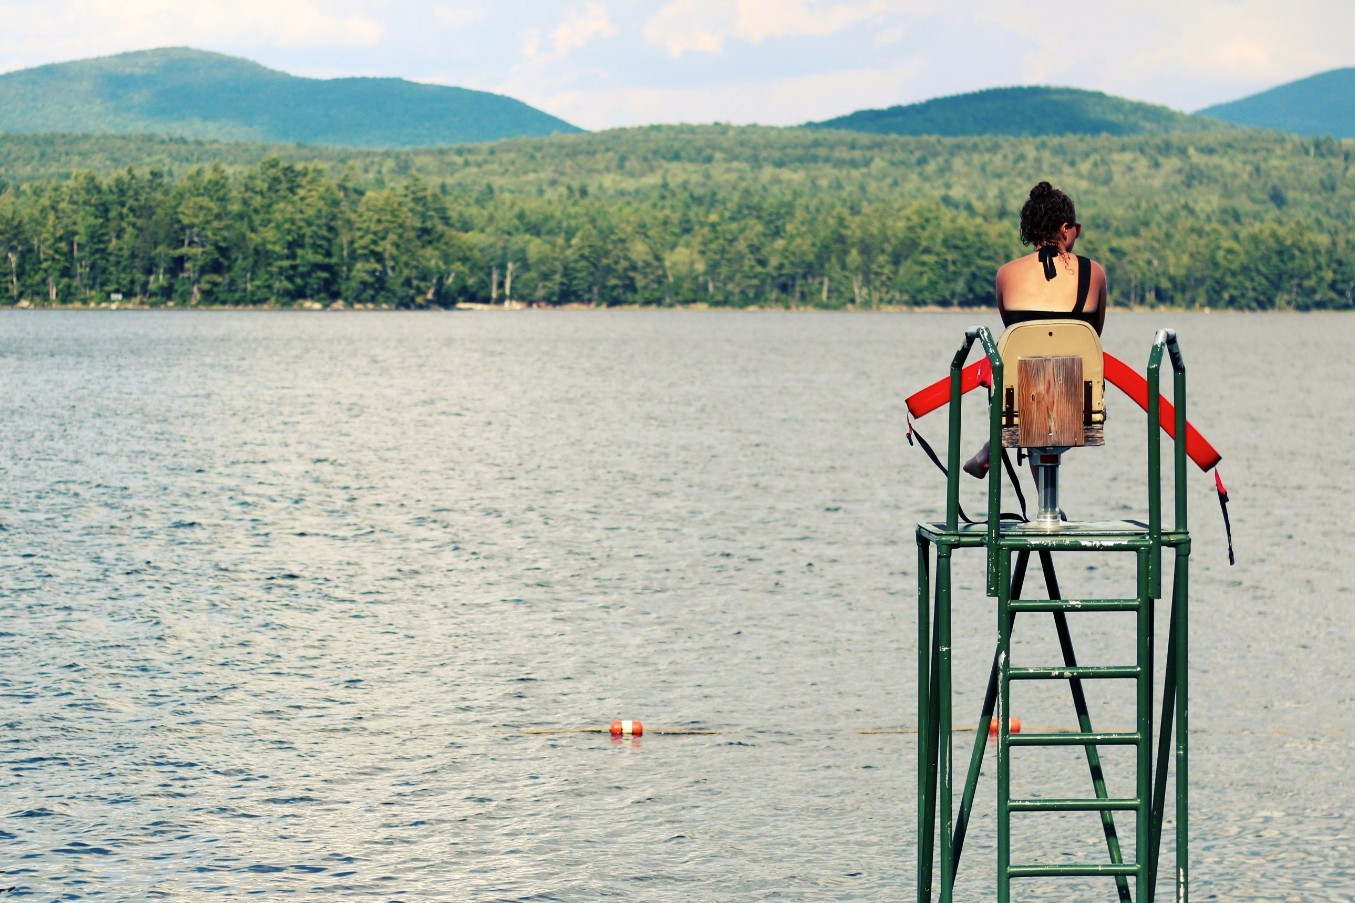 We couldn't swim without lifeguards: How you can get involved